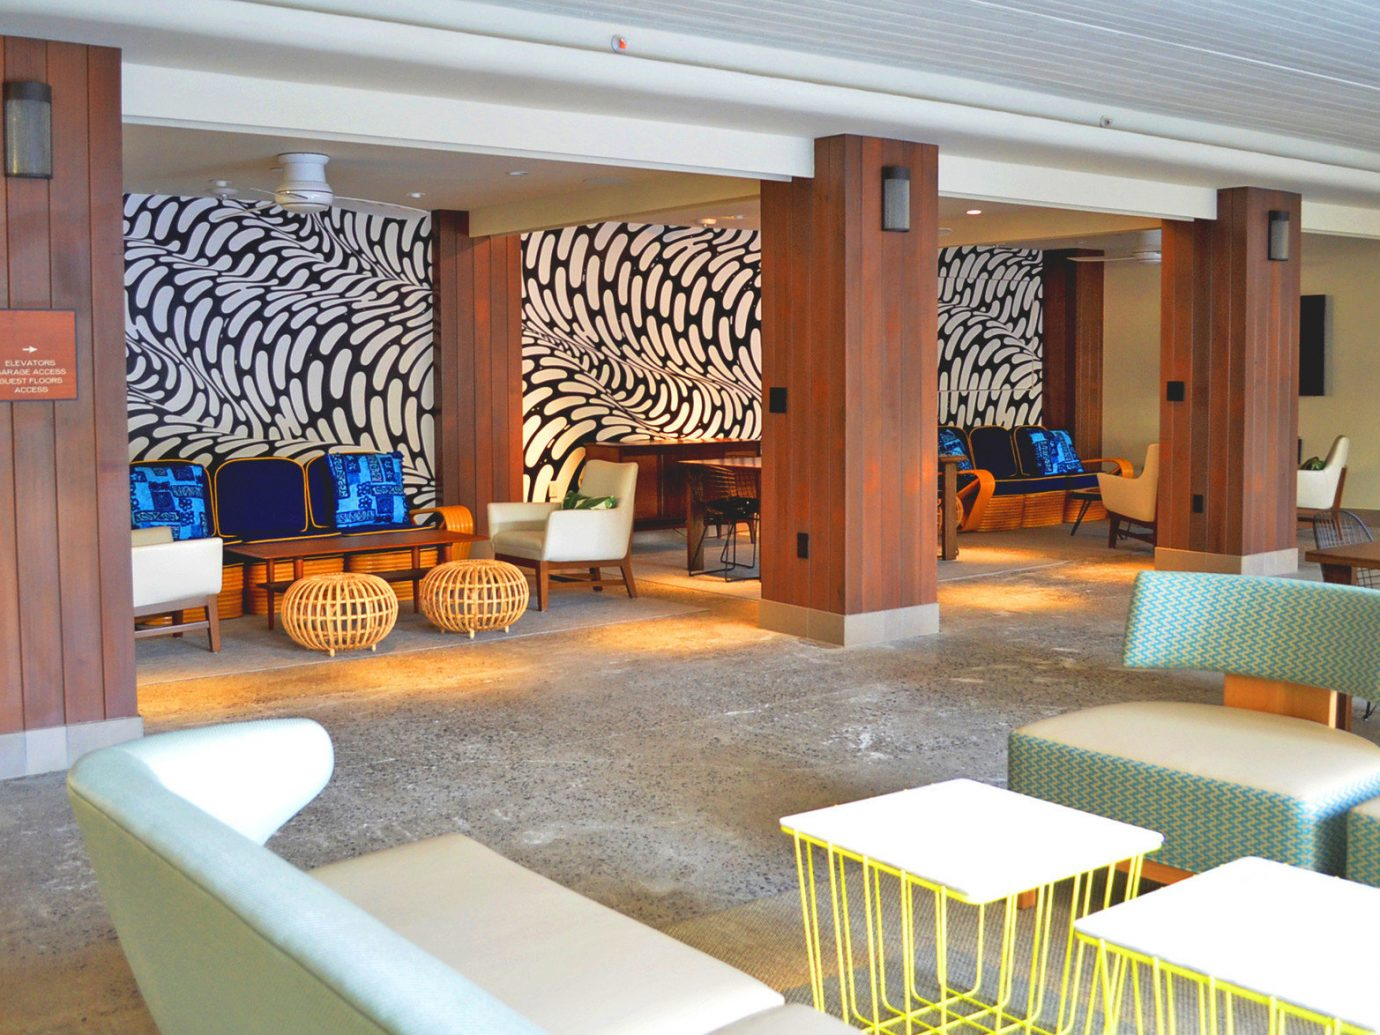 ambient lighting Boutique Boutique Hotels chic Hawaii Honolulu Hotels Lobby Lounge Luxury nautical sophisticated Style + Design stylish floor indoor Living property room furniture estate condominium interior design home living room Design real estate Resort dining room Villa cottage area